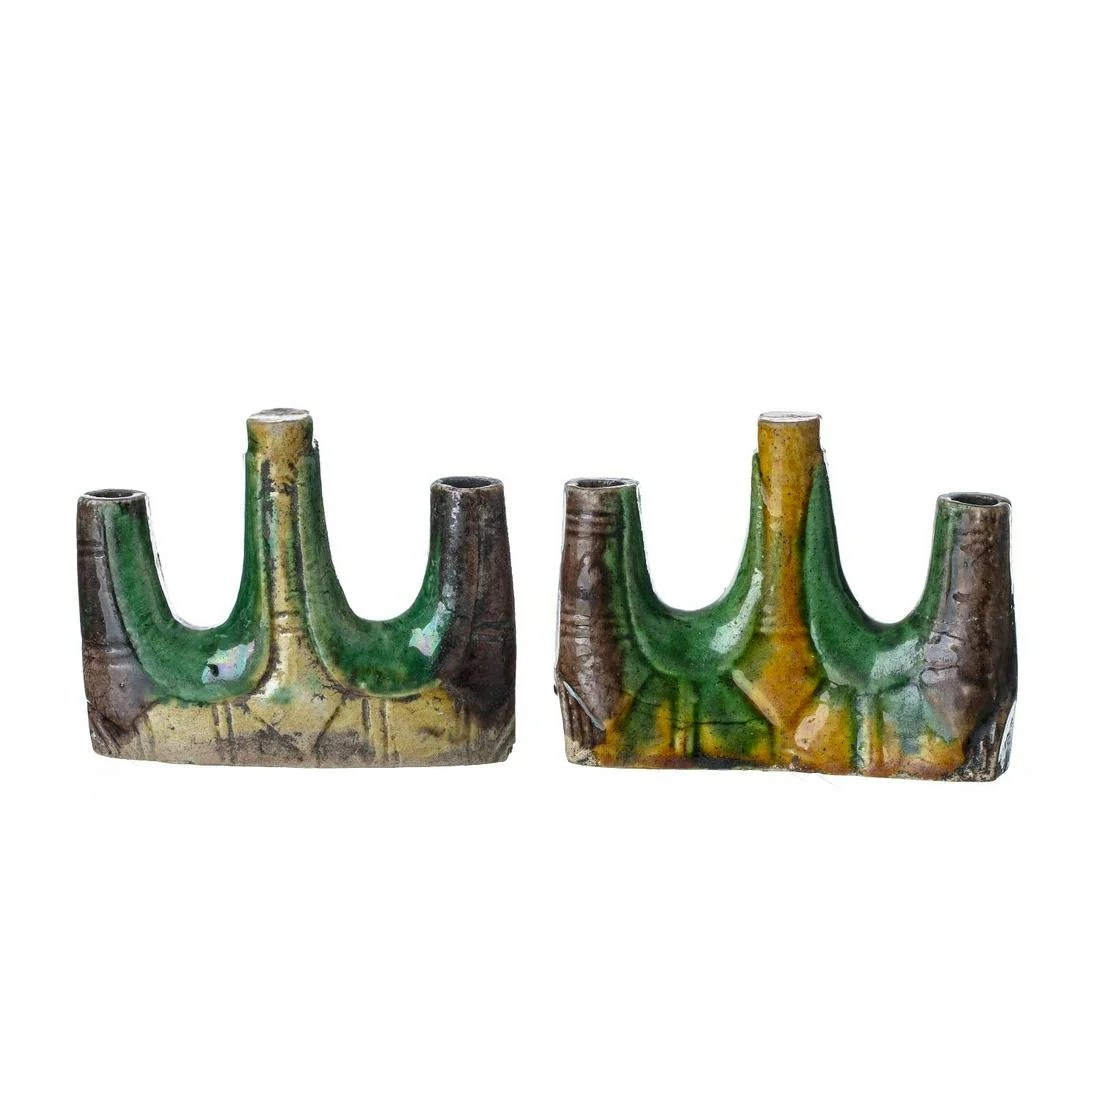 Chinese Sancai ceramic brush holder pair, Kangxi